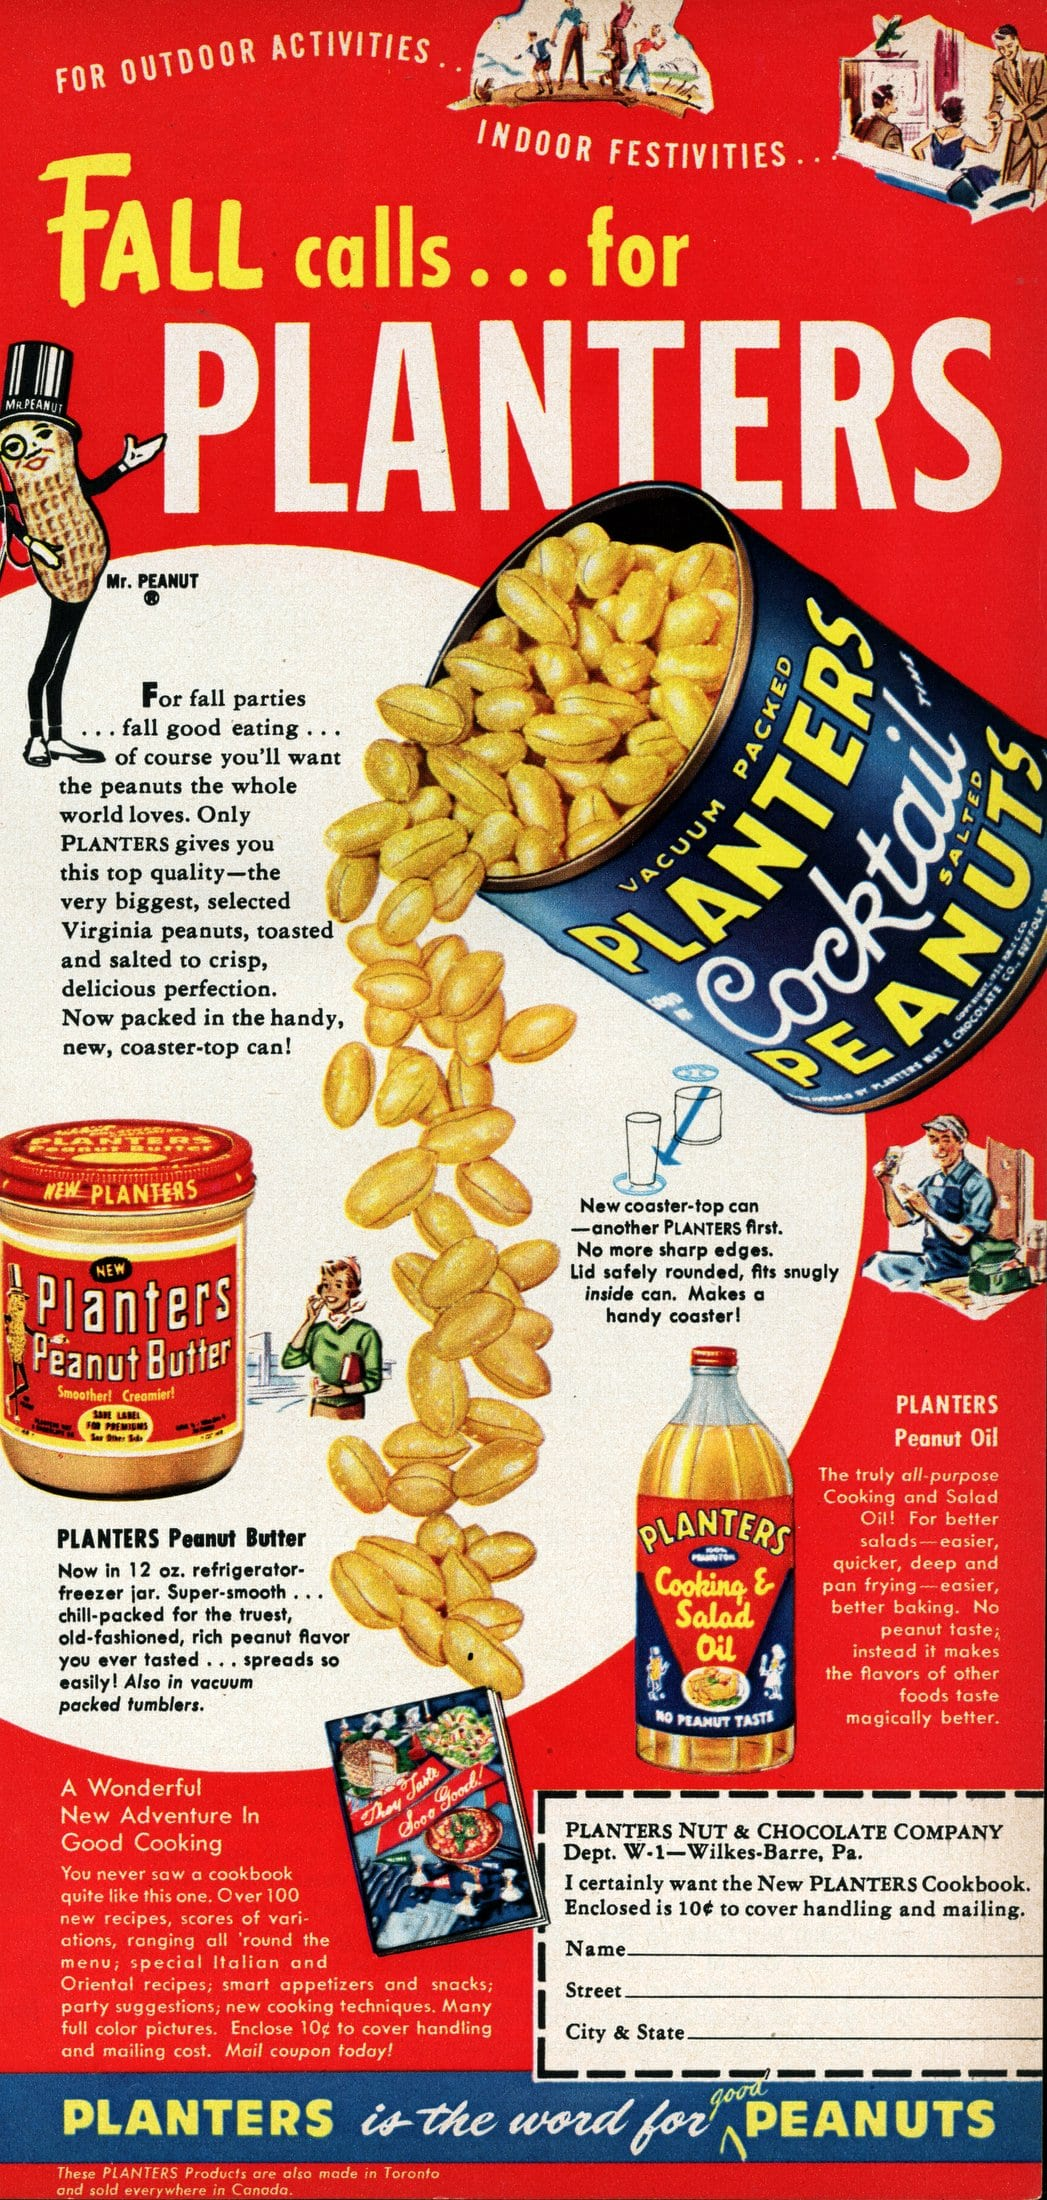 Old-fashioned Planters peanut butter (1955)